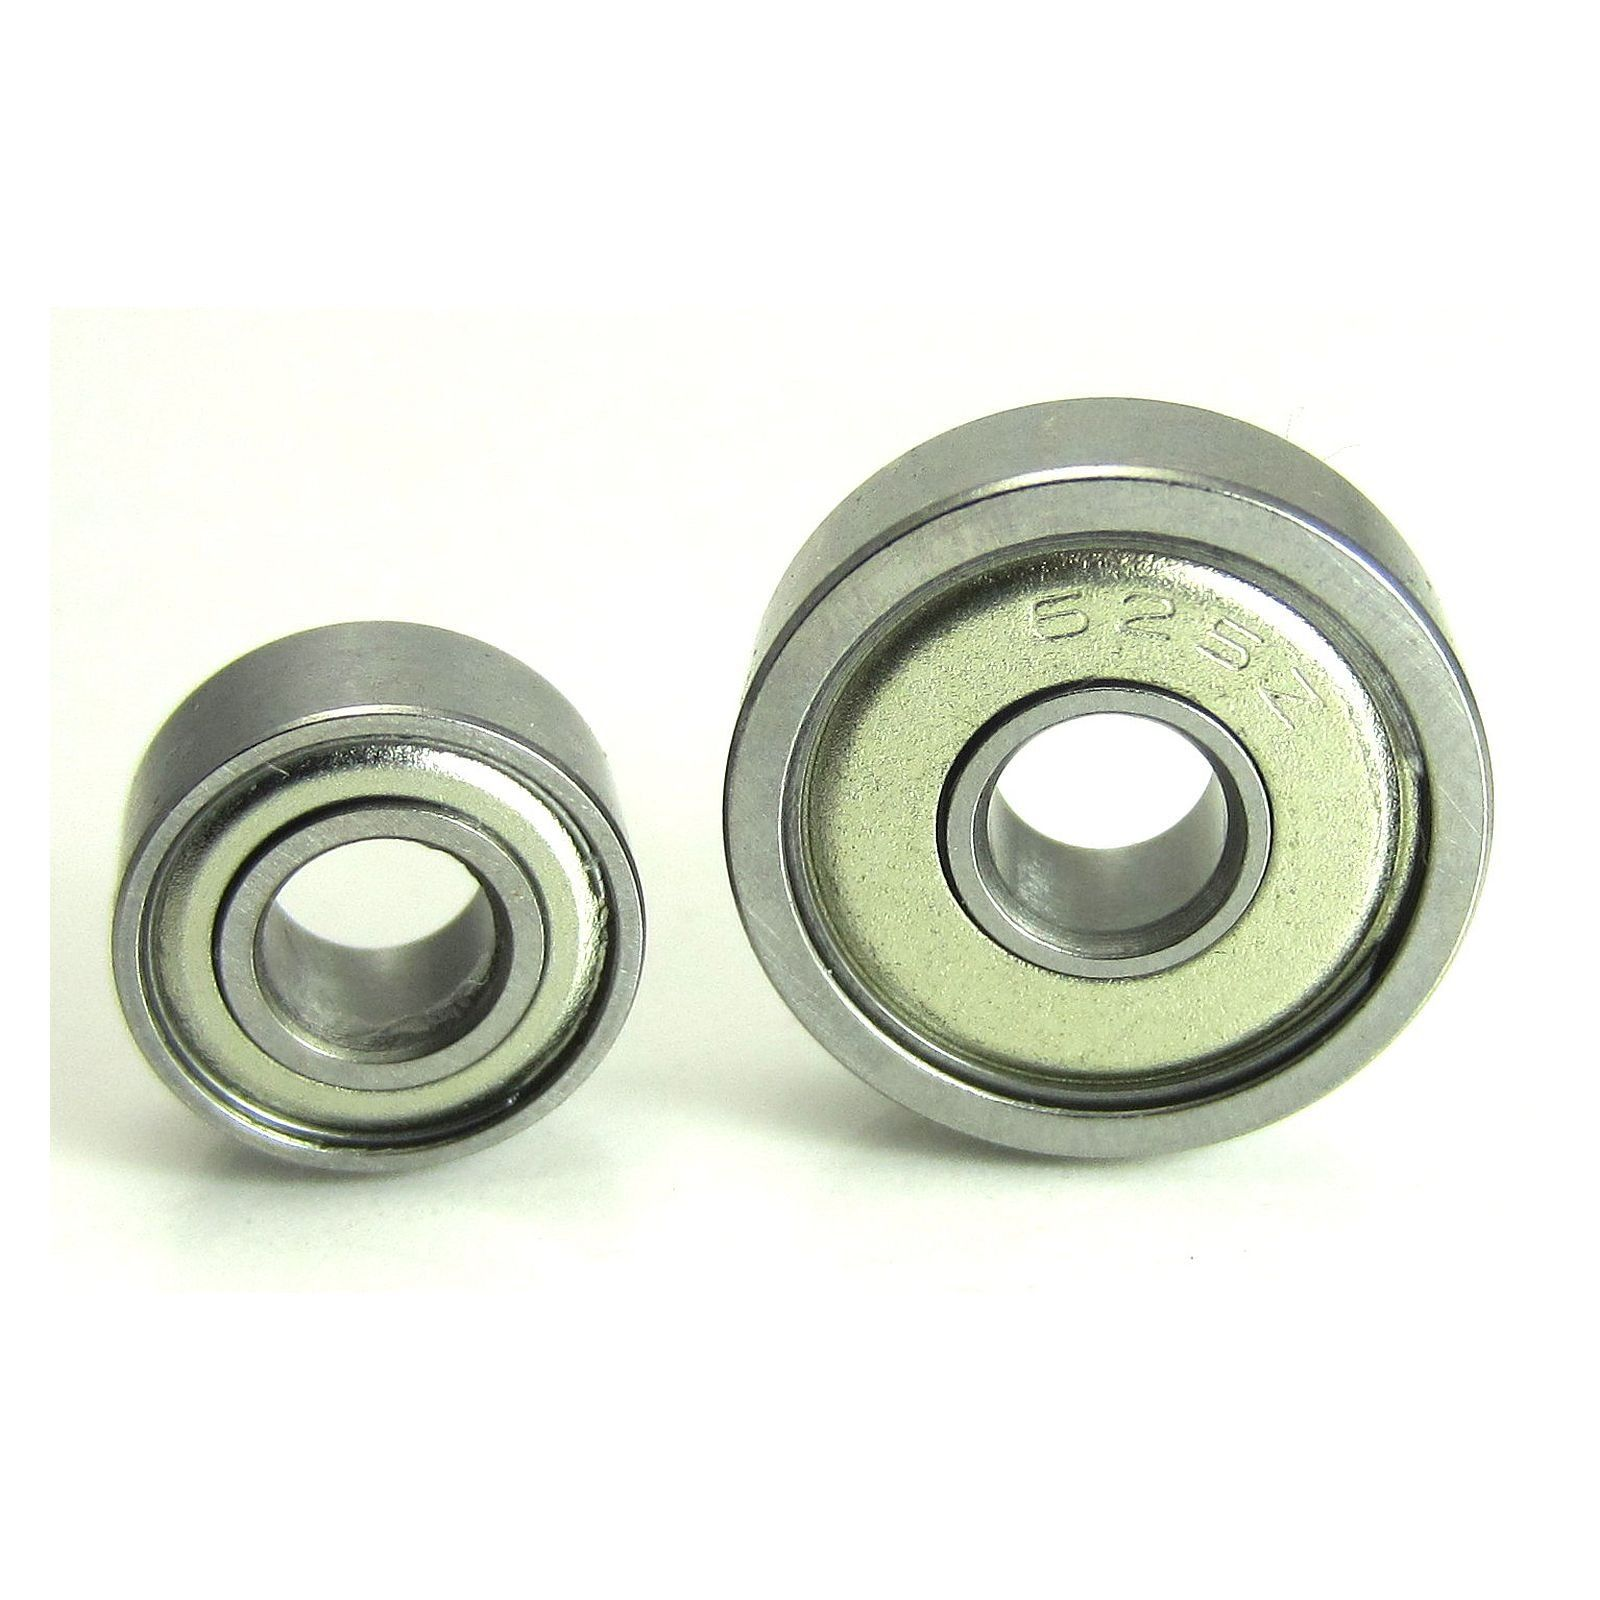 TRB RC Brushless Motor Ball Bearings Tekin T8 GEN 2 Truggy 4038 - trb-rc-bearings